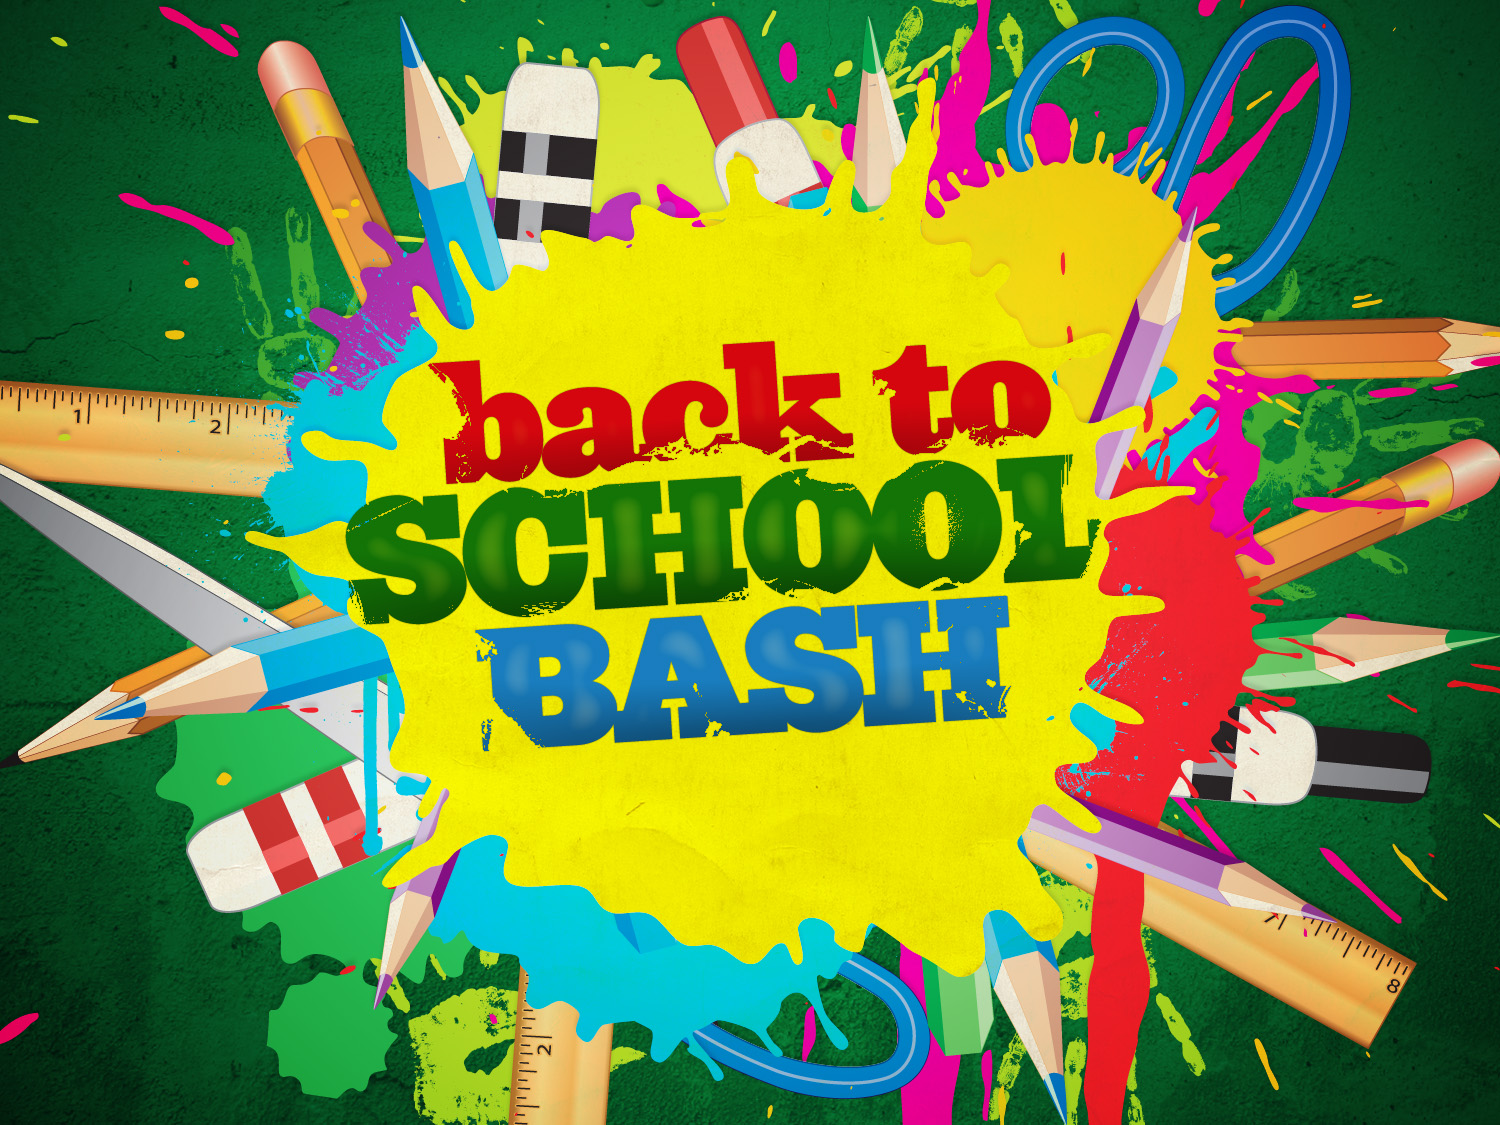 Back To School Bash — The Building.